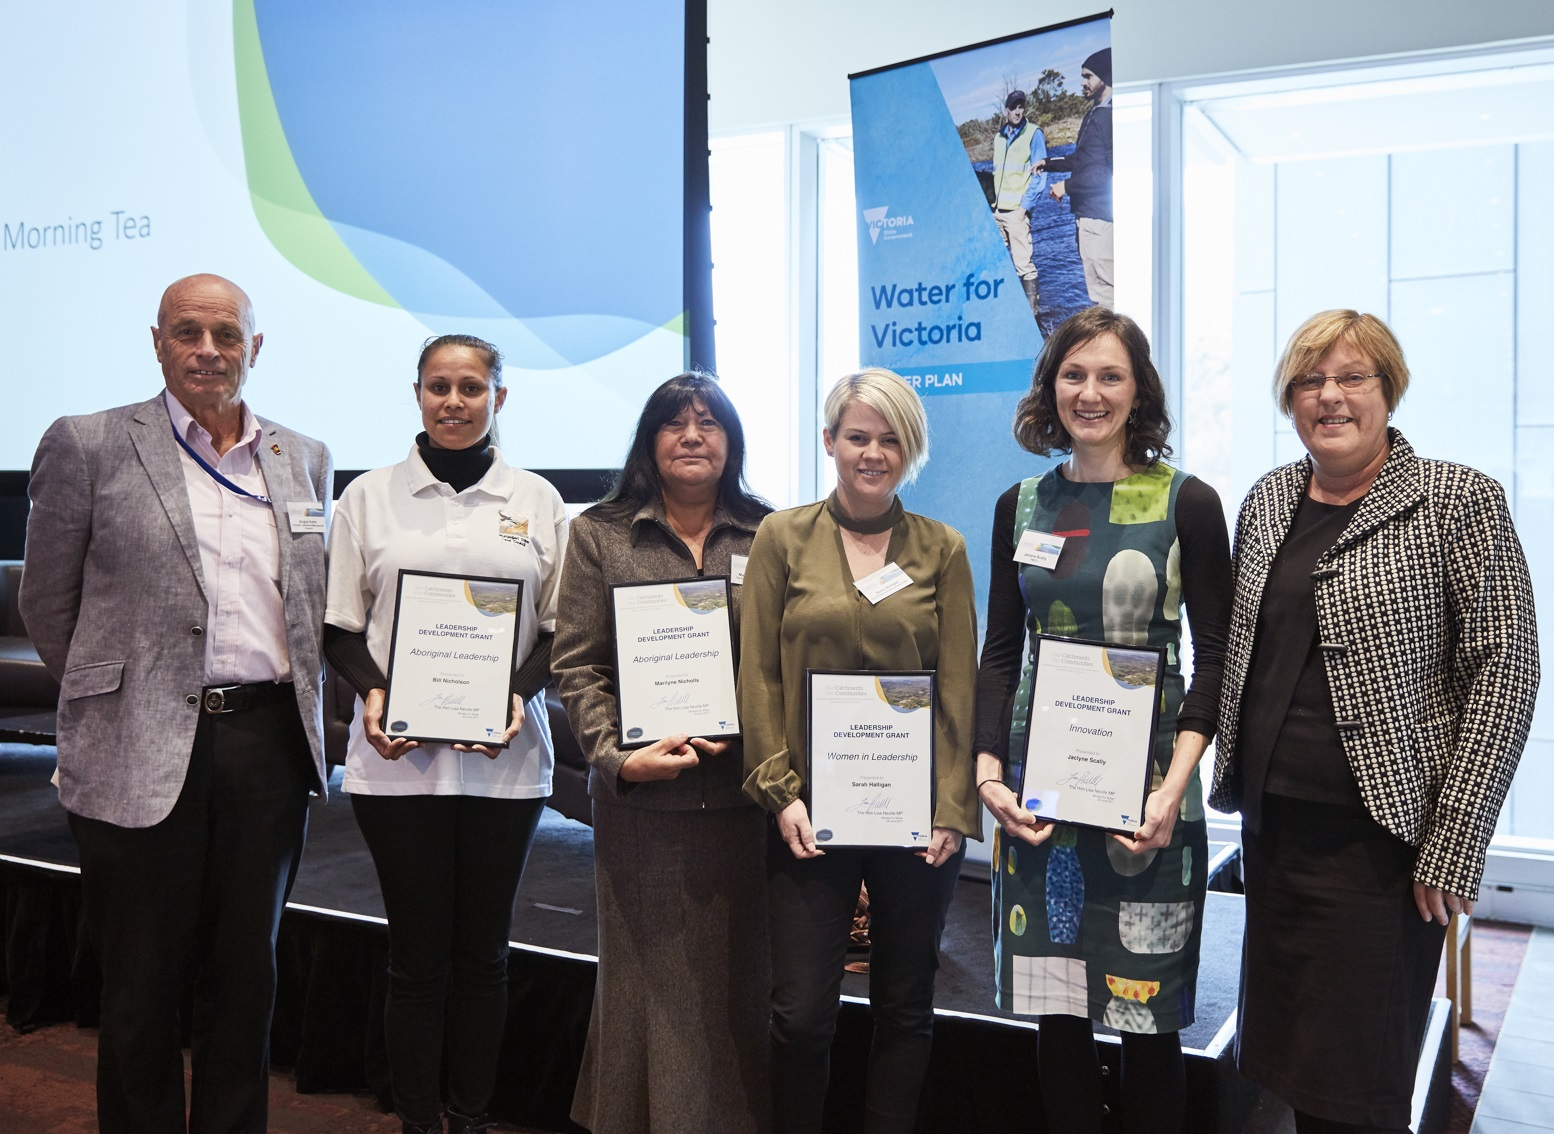 Minister for Water, Lisa Neville, standing with the 2017 grant recipients who are each holding their framed certificate